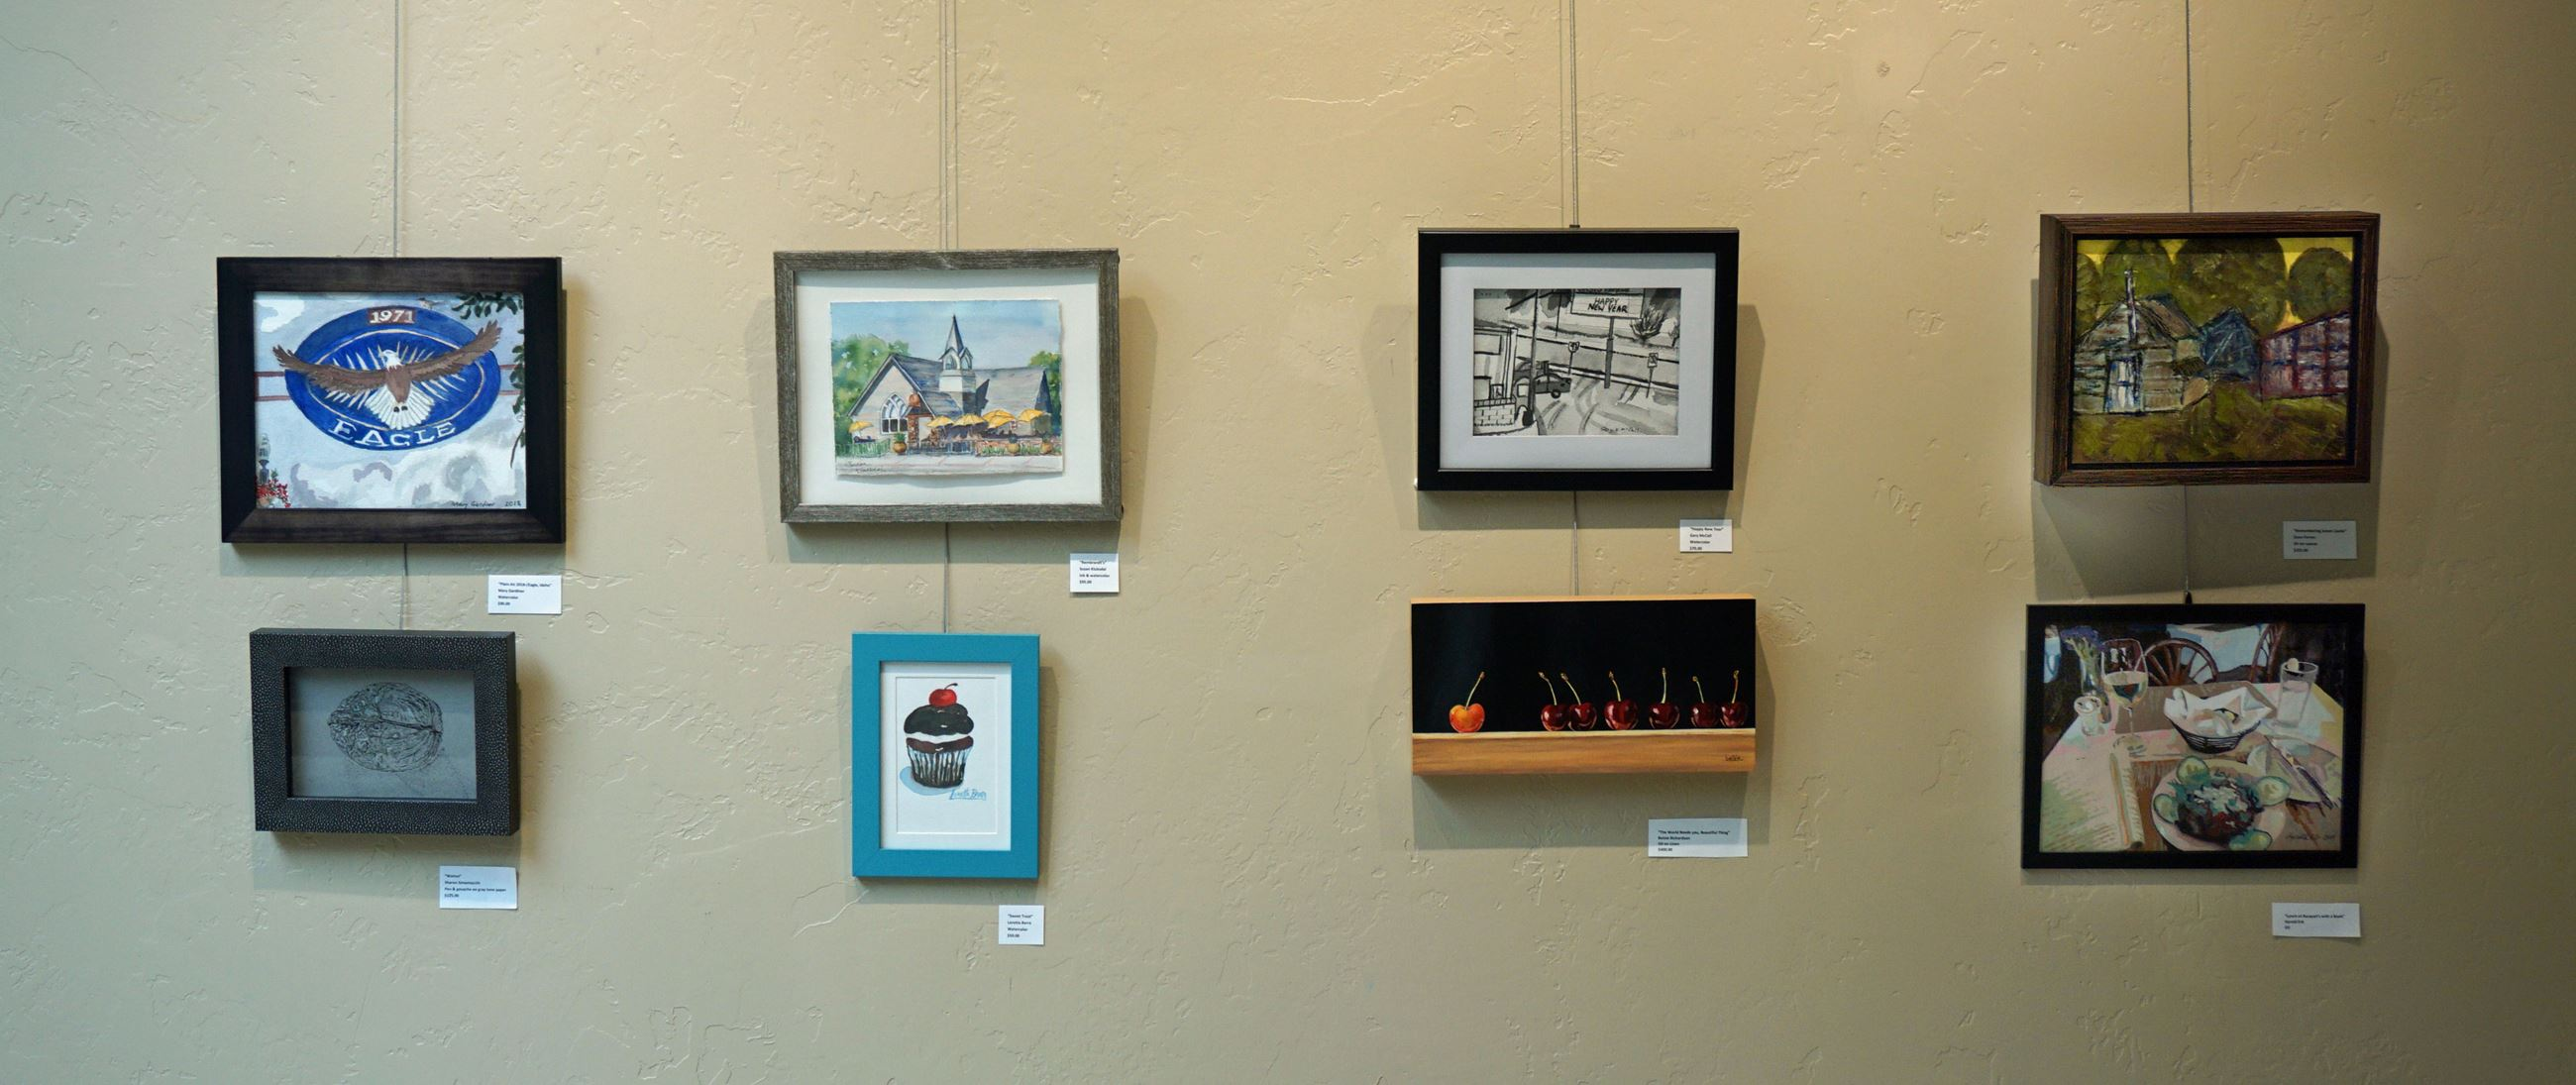 Image shows 8 small paintings hanging in front of a wall.